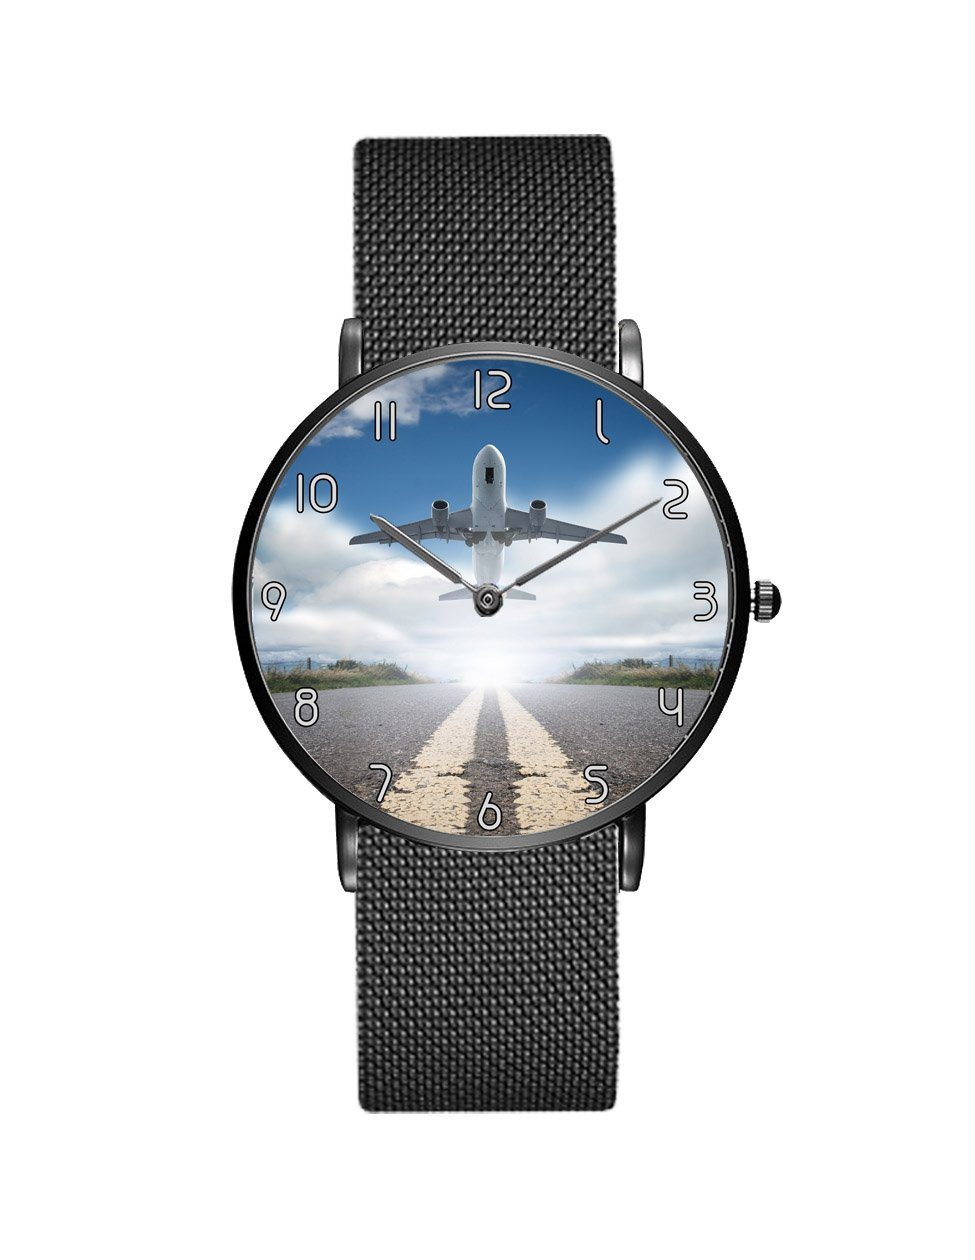 Taking Off Aircraft Printed Stainless Steel Strap Watches Aviation Shop Black & Stainless Steel Strap